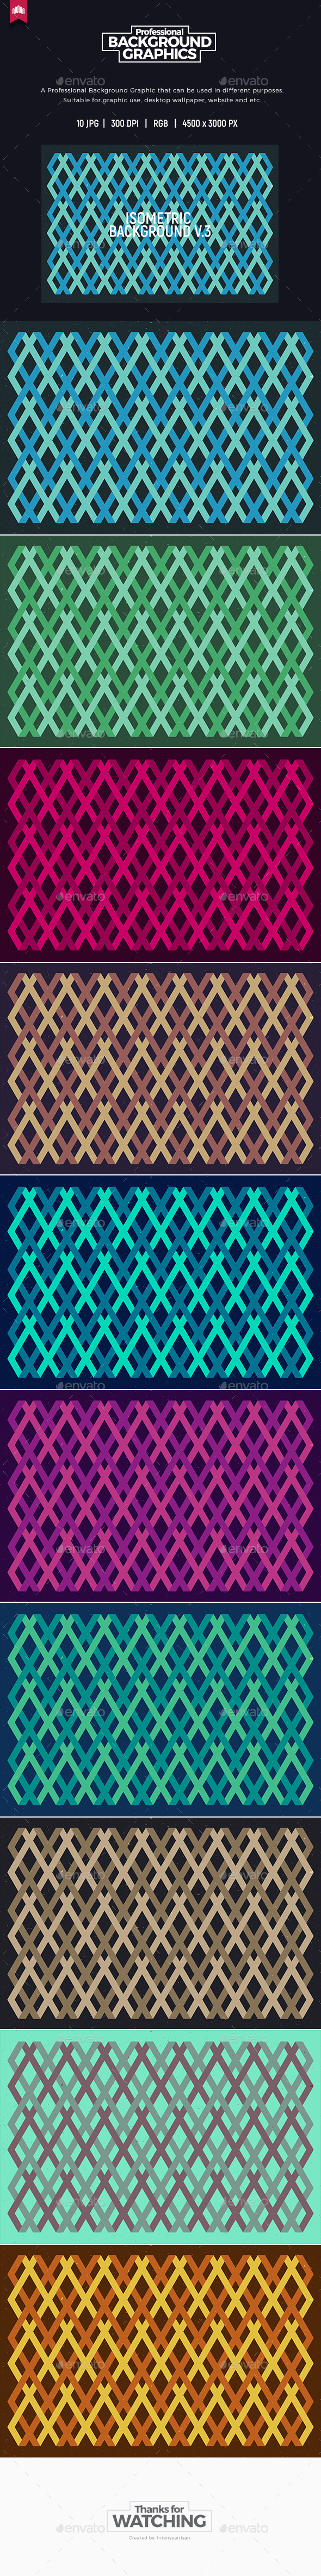 Isometric Background V.3 - Abstract Backgrounds